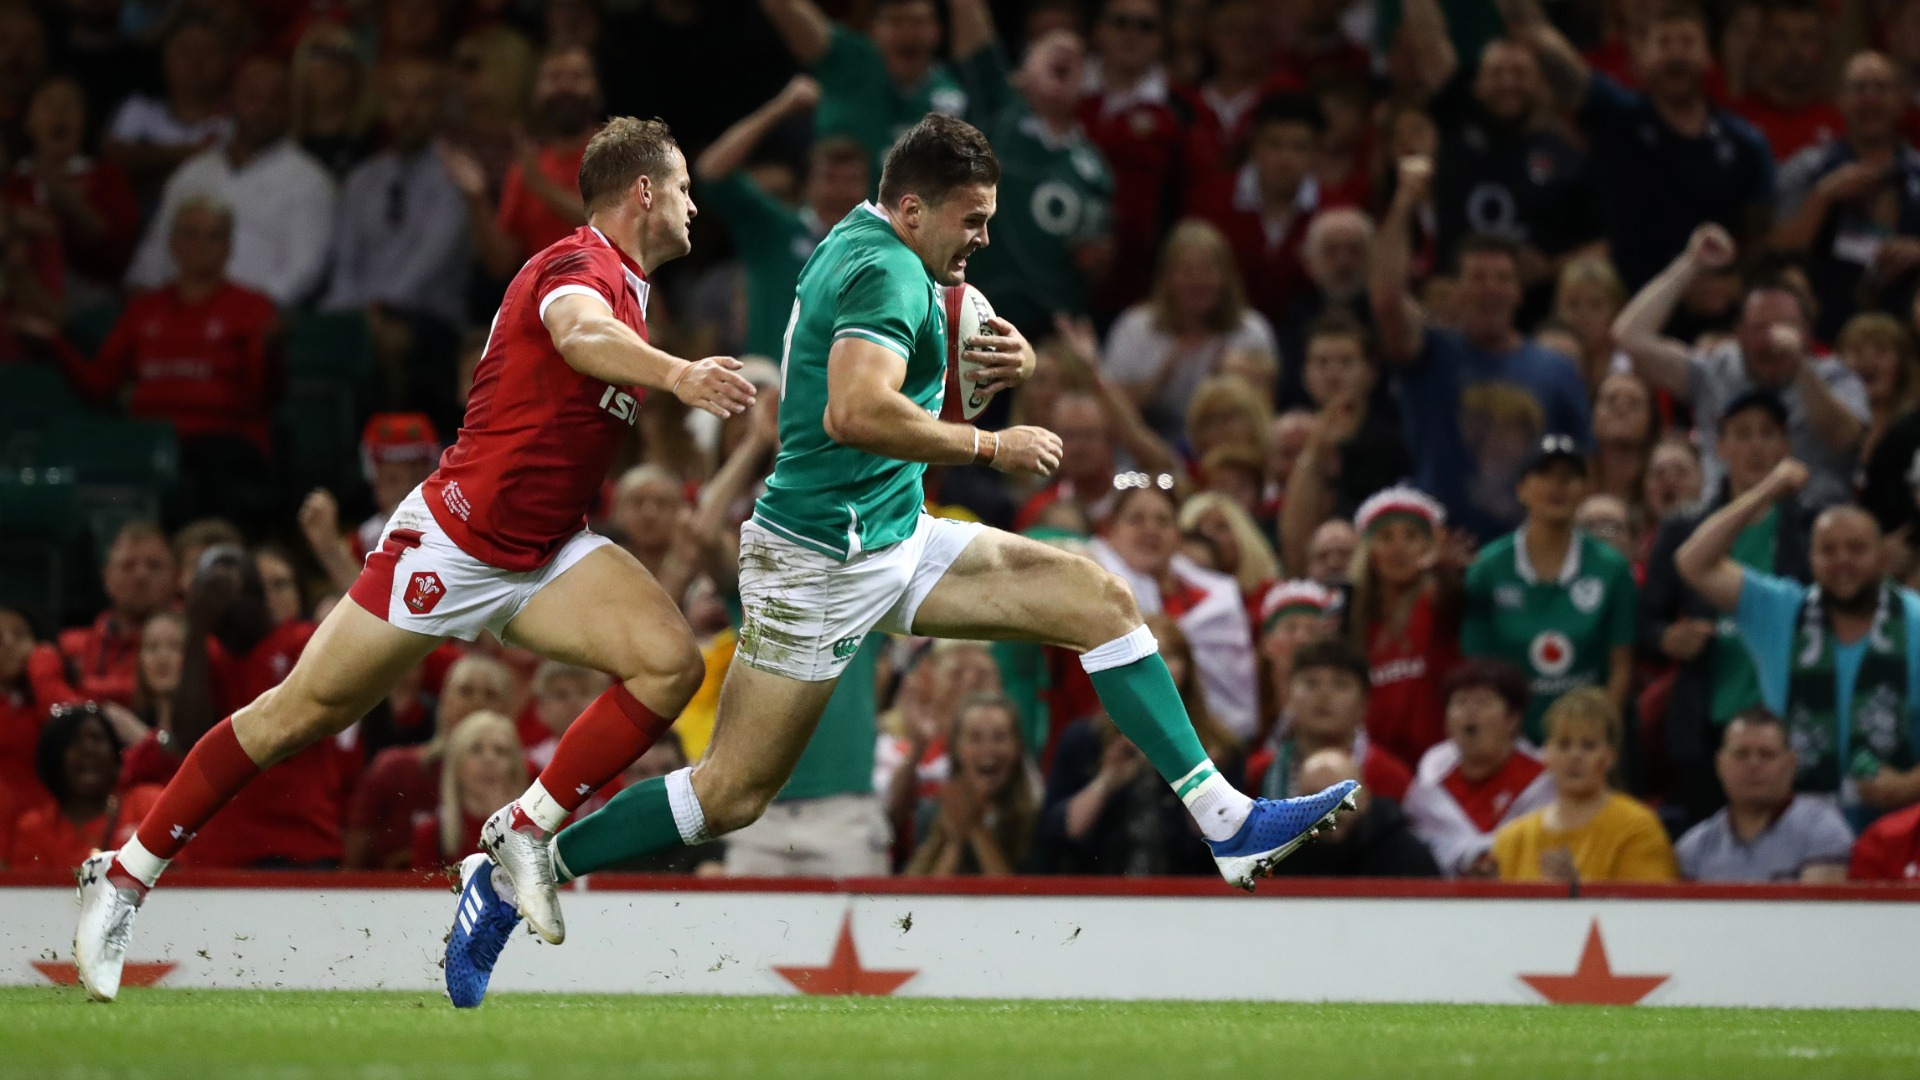 Wales 17-22 Ireland: Jacob Stockdale at the double in